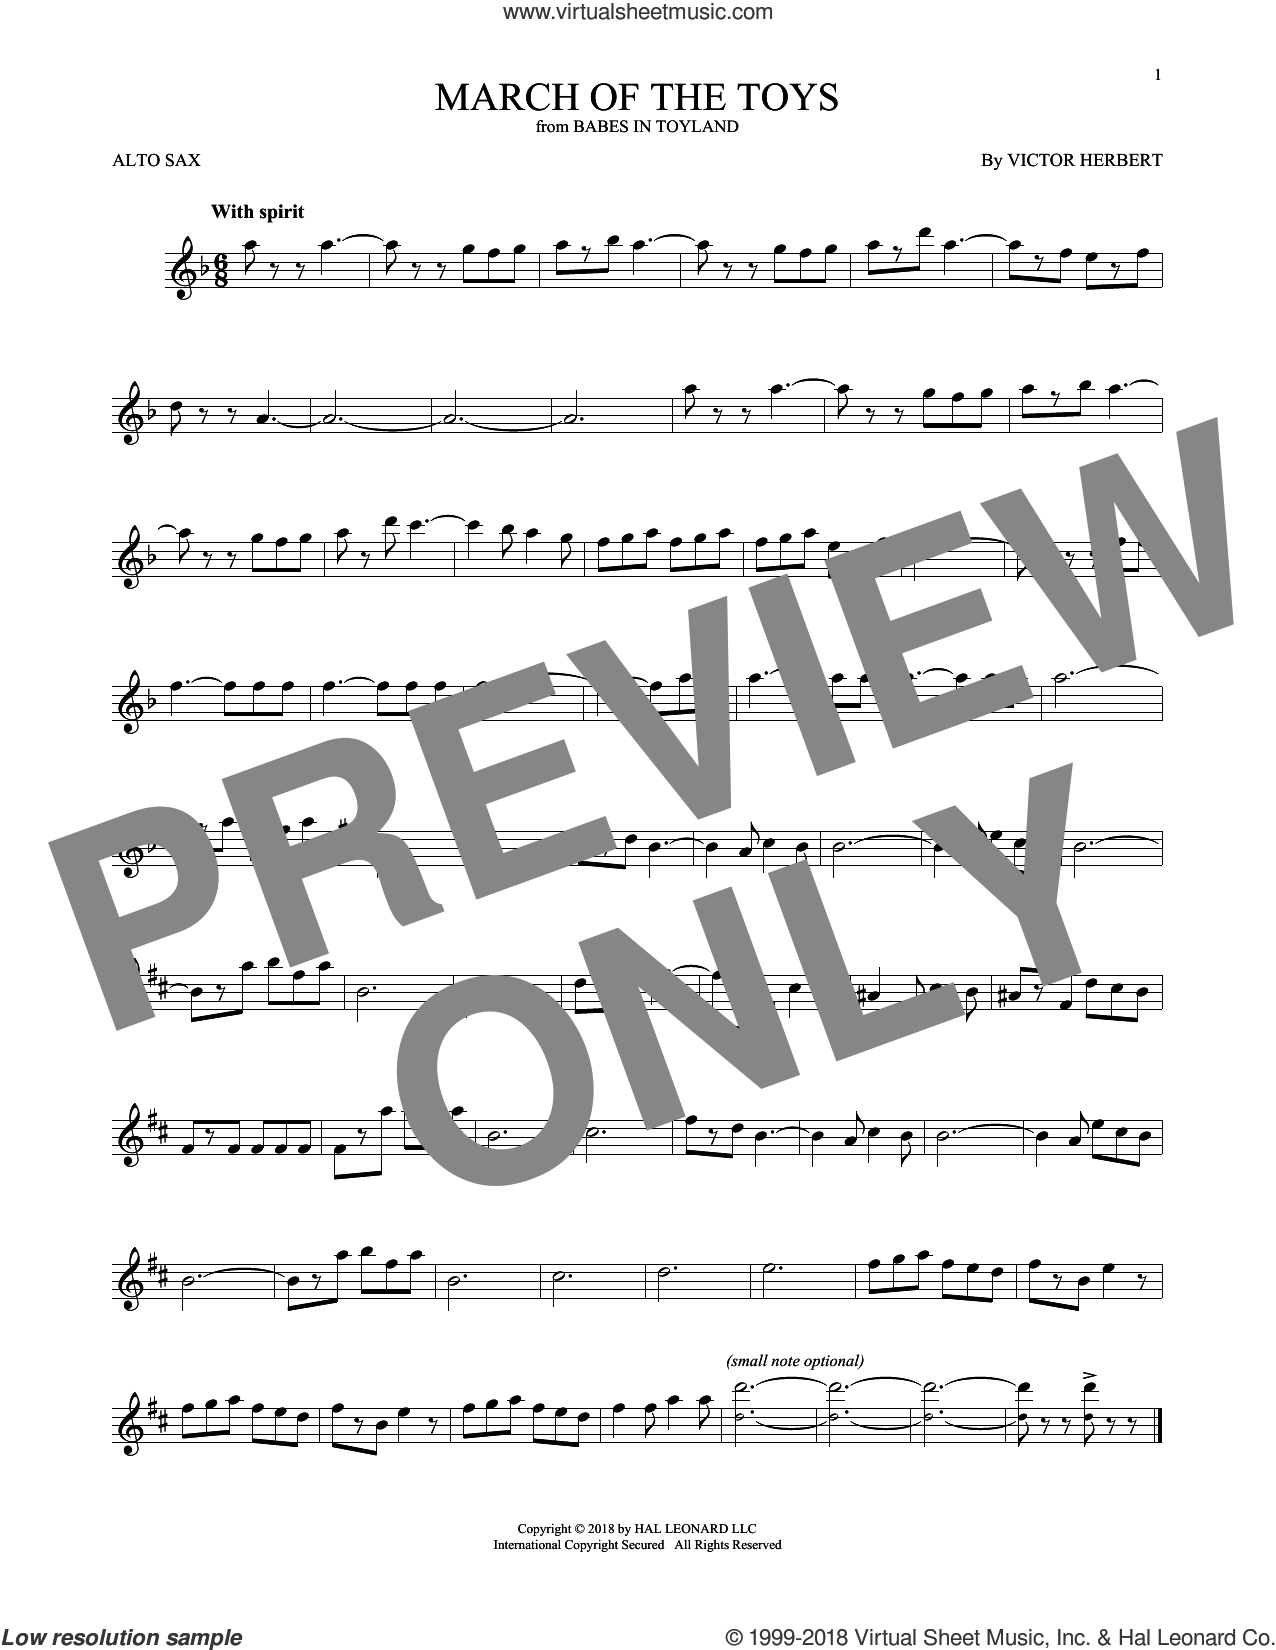 March Of The Toys sheet music for alto saxophone solo by Victor Herbert, intermediate skill level